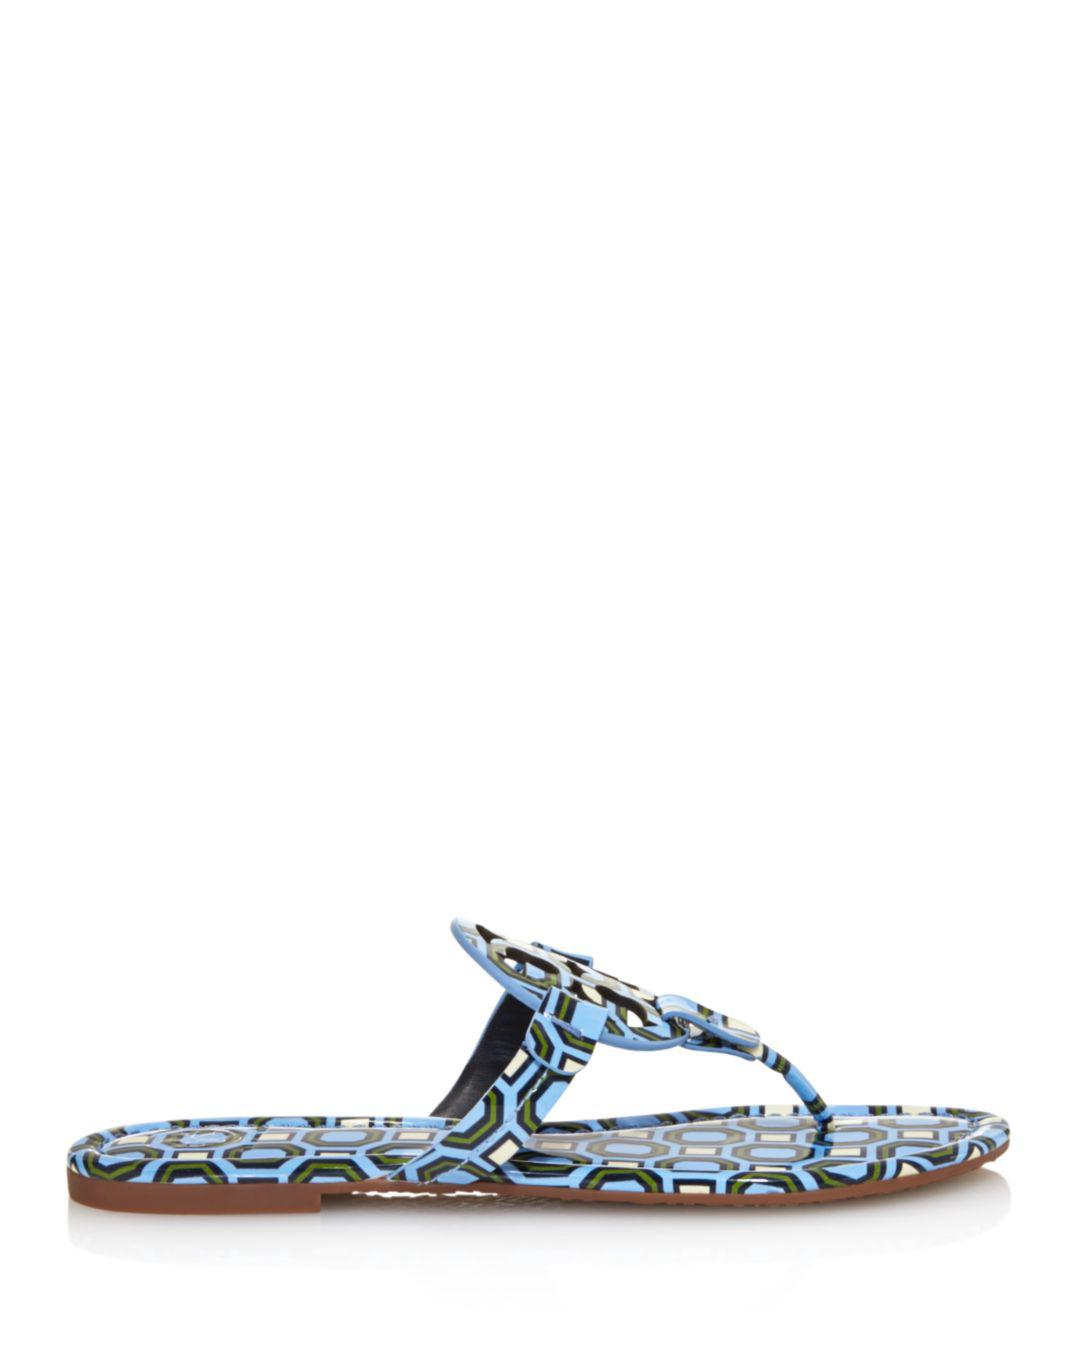 9b29205d022a Lyst - Tory Burch Women s Miller Patent Leather Thong Sandals in Blue